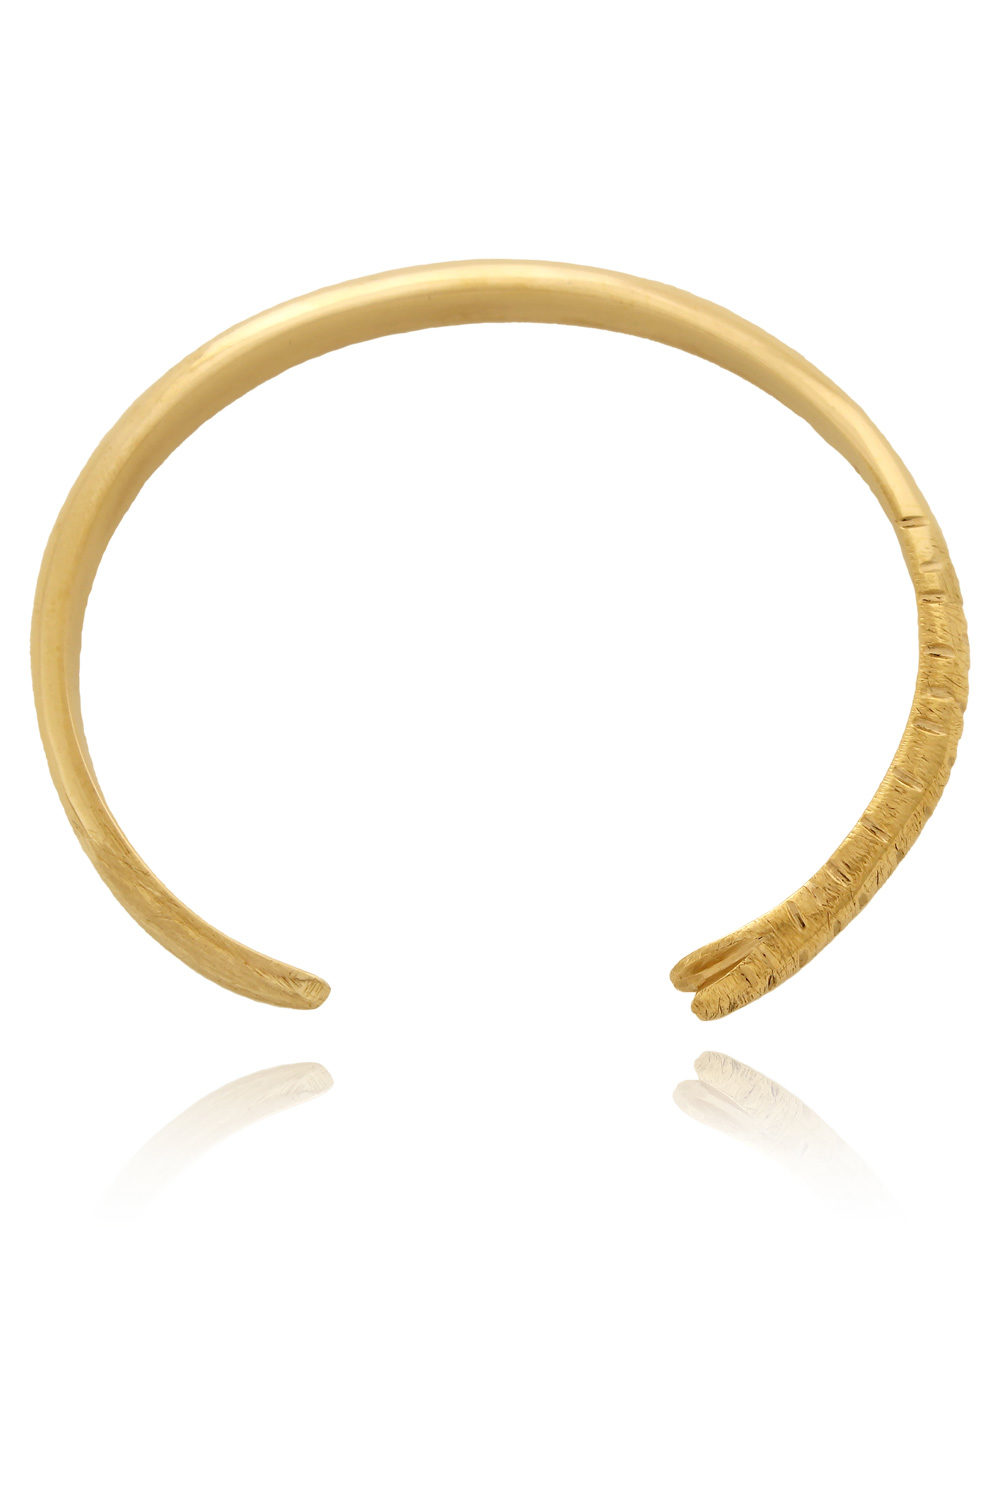 Trunk to Tusk Cuff Bangle by SHIKHAZURI